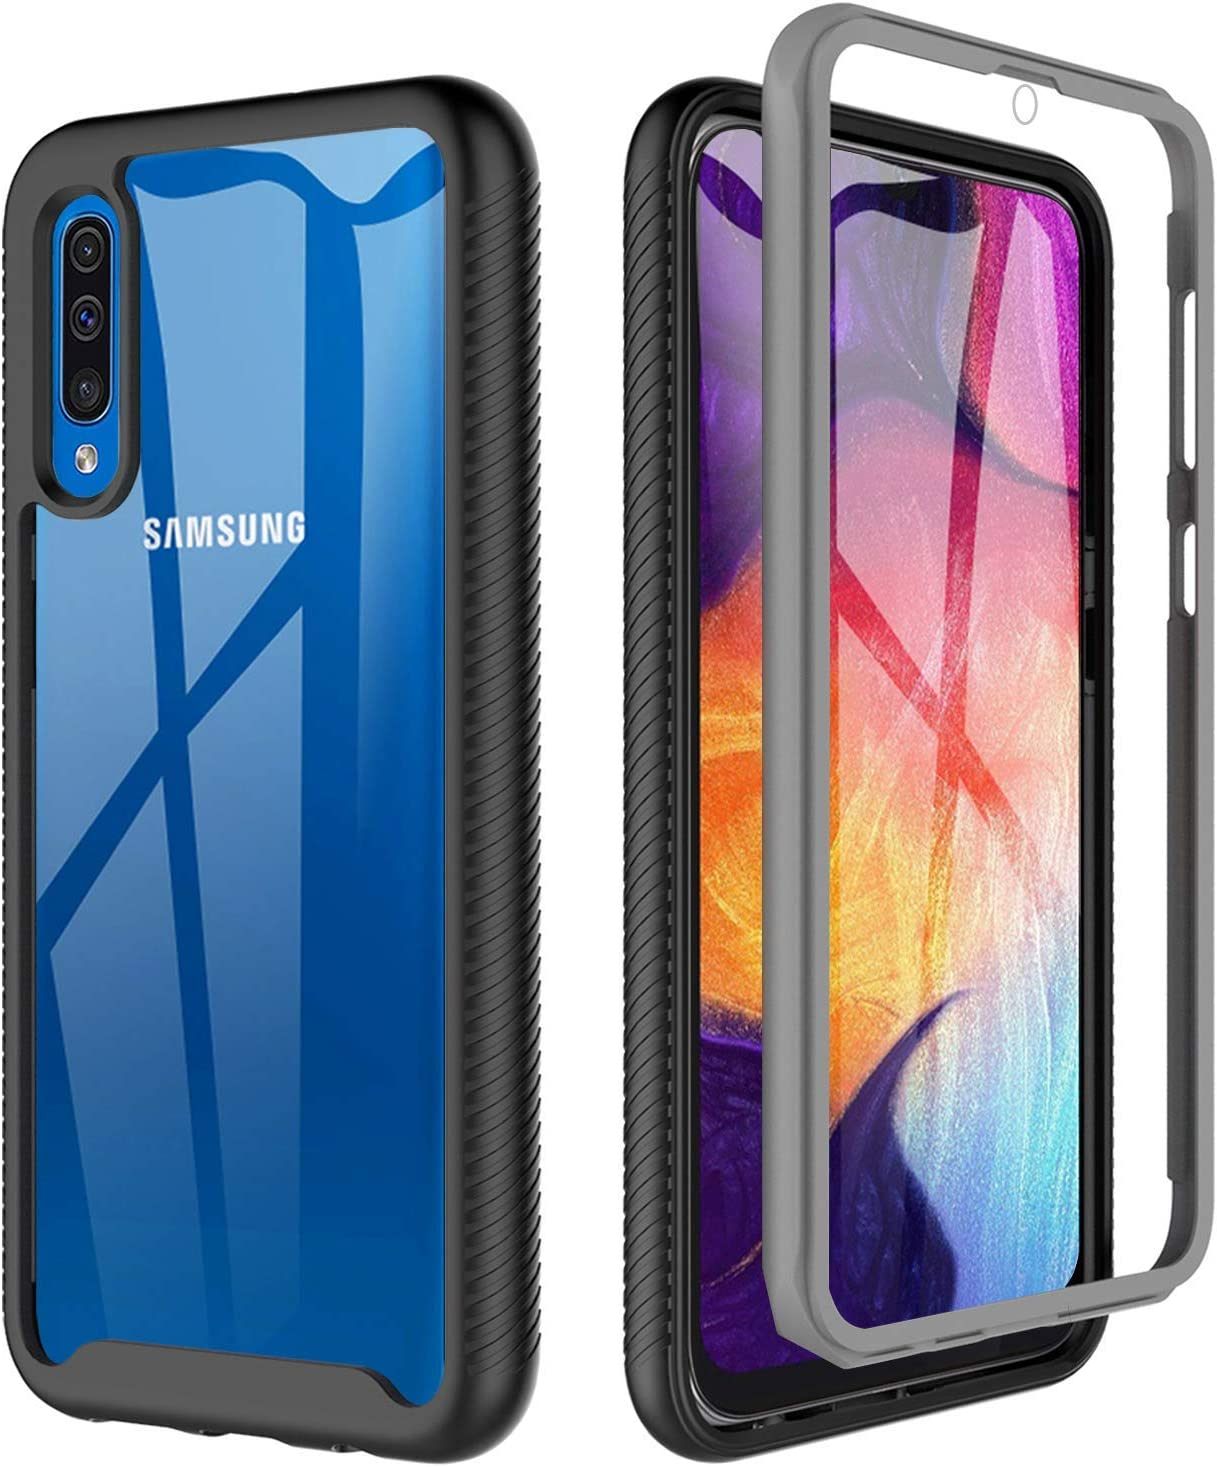 BESINPO Samsung Galaxy A50 Case A50s Case A30s Case, Full-Body Protective Slim Cover Built-in Screen Protector Shockproof Case for Galaxy A50/A50s/A30s(2019 Release) - Black/Clear